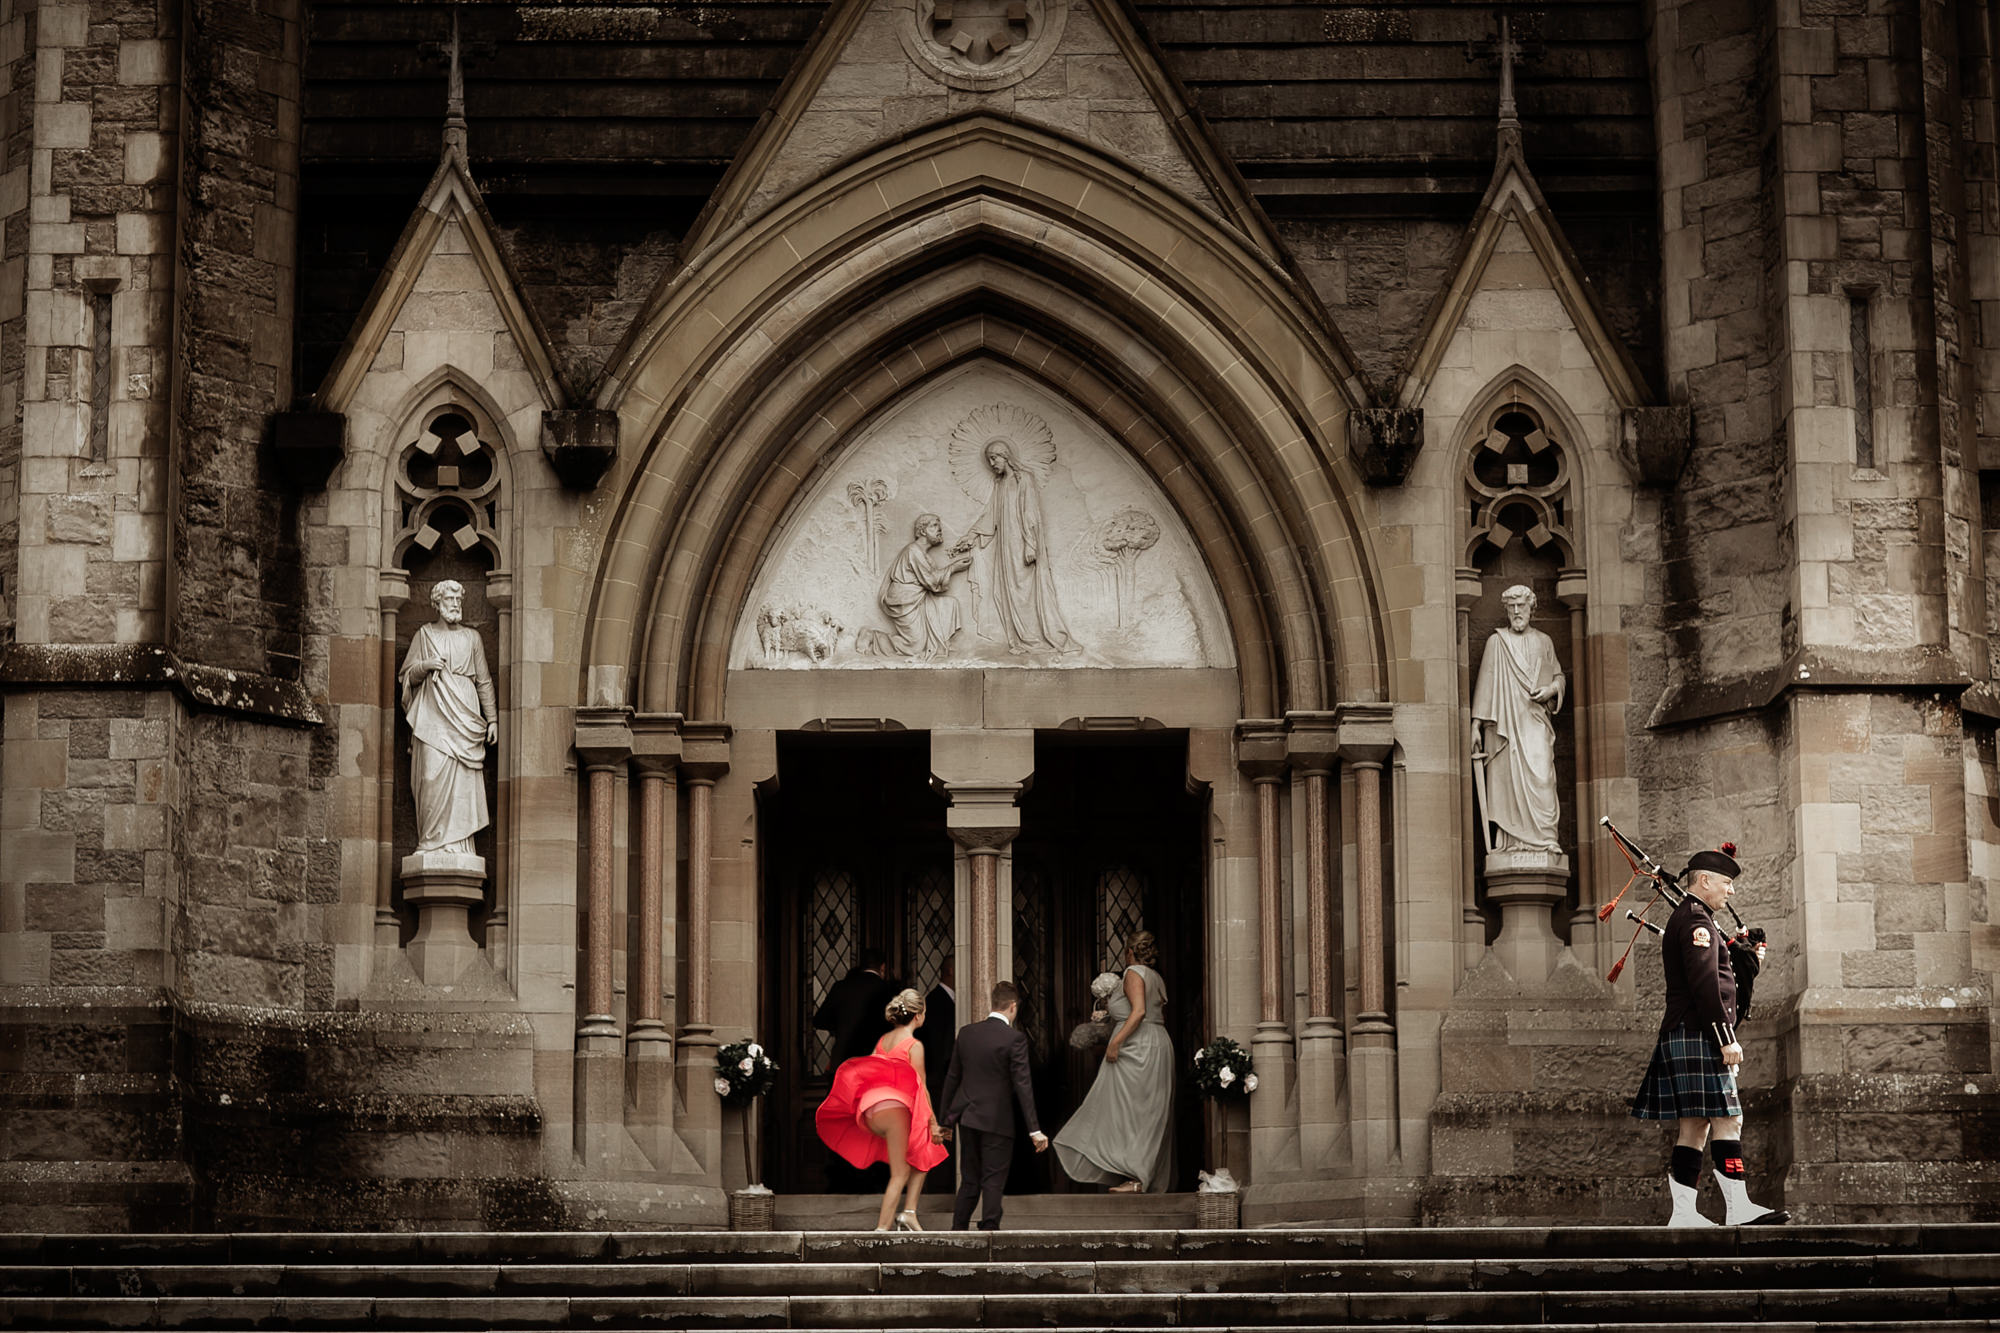 Marilyn Monroe moment - guest arrives at church - photo by David Bastianoni